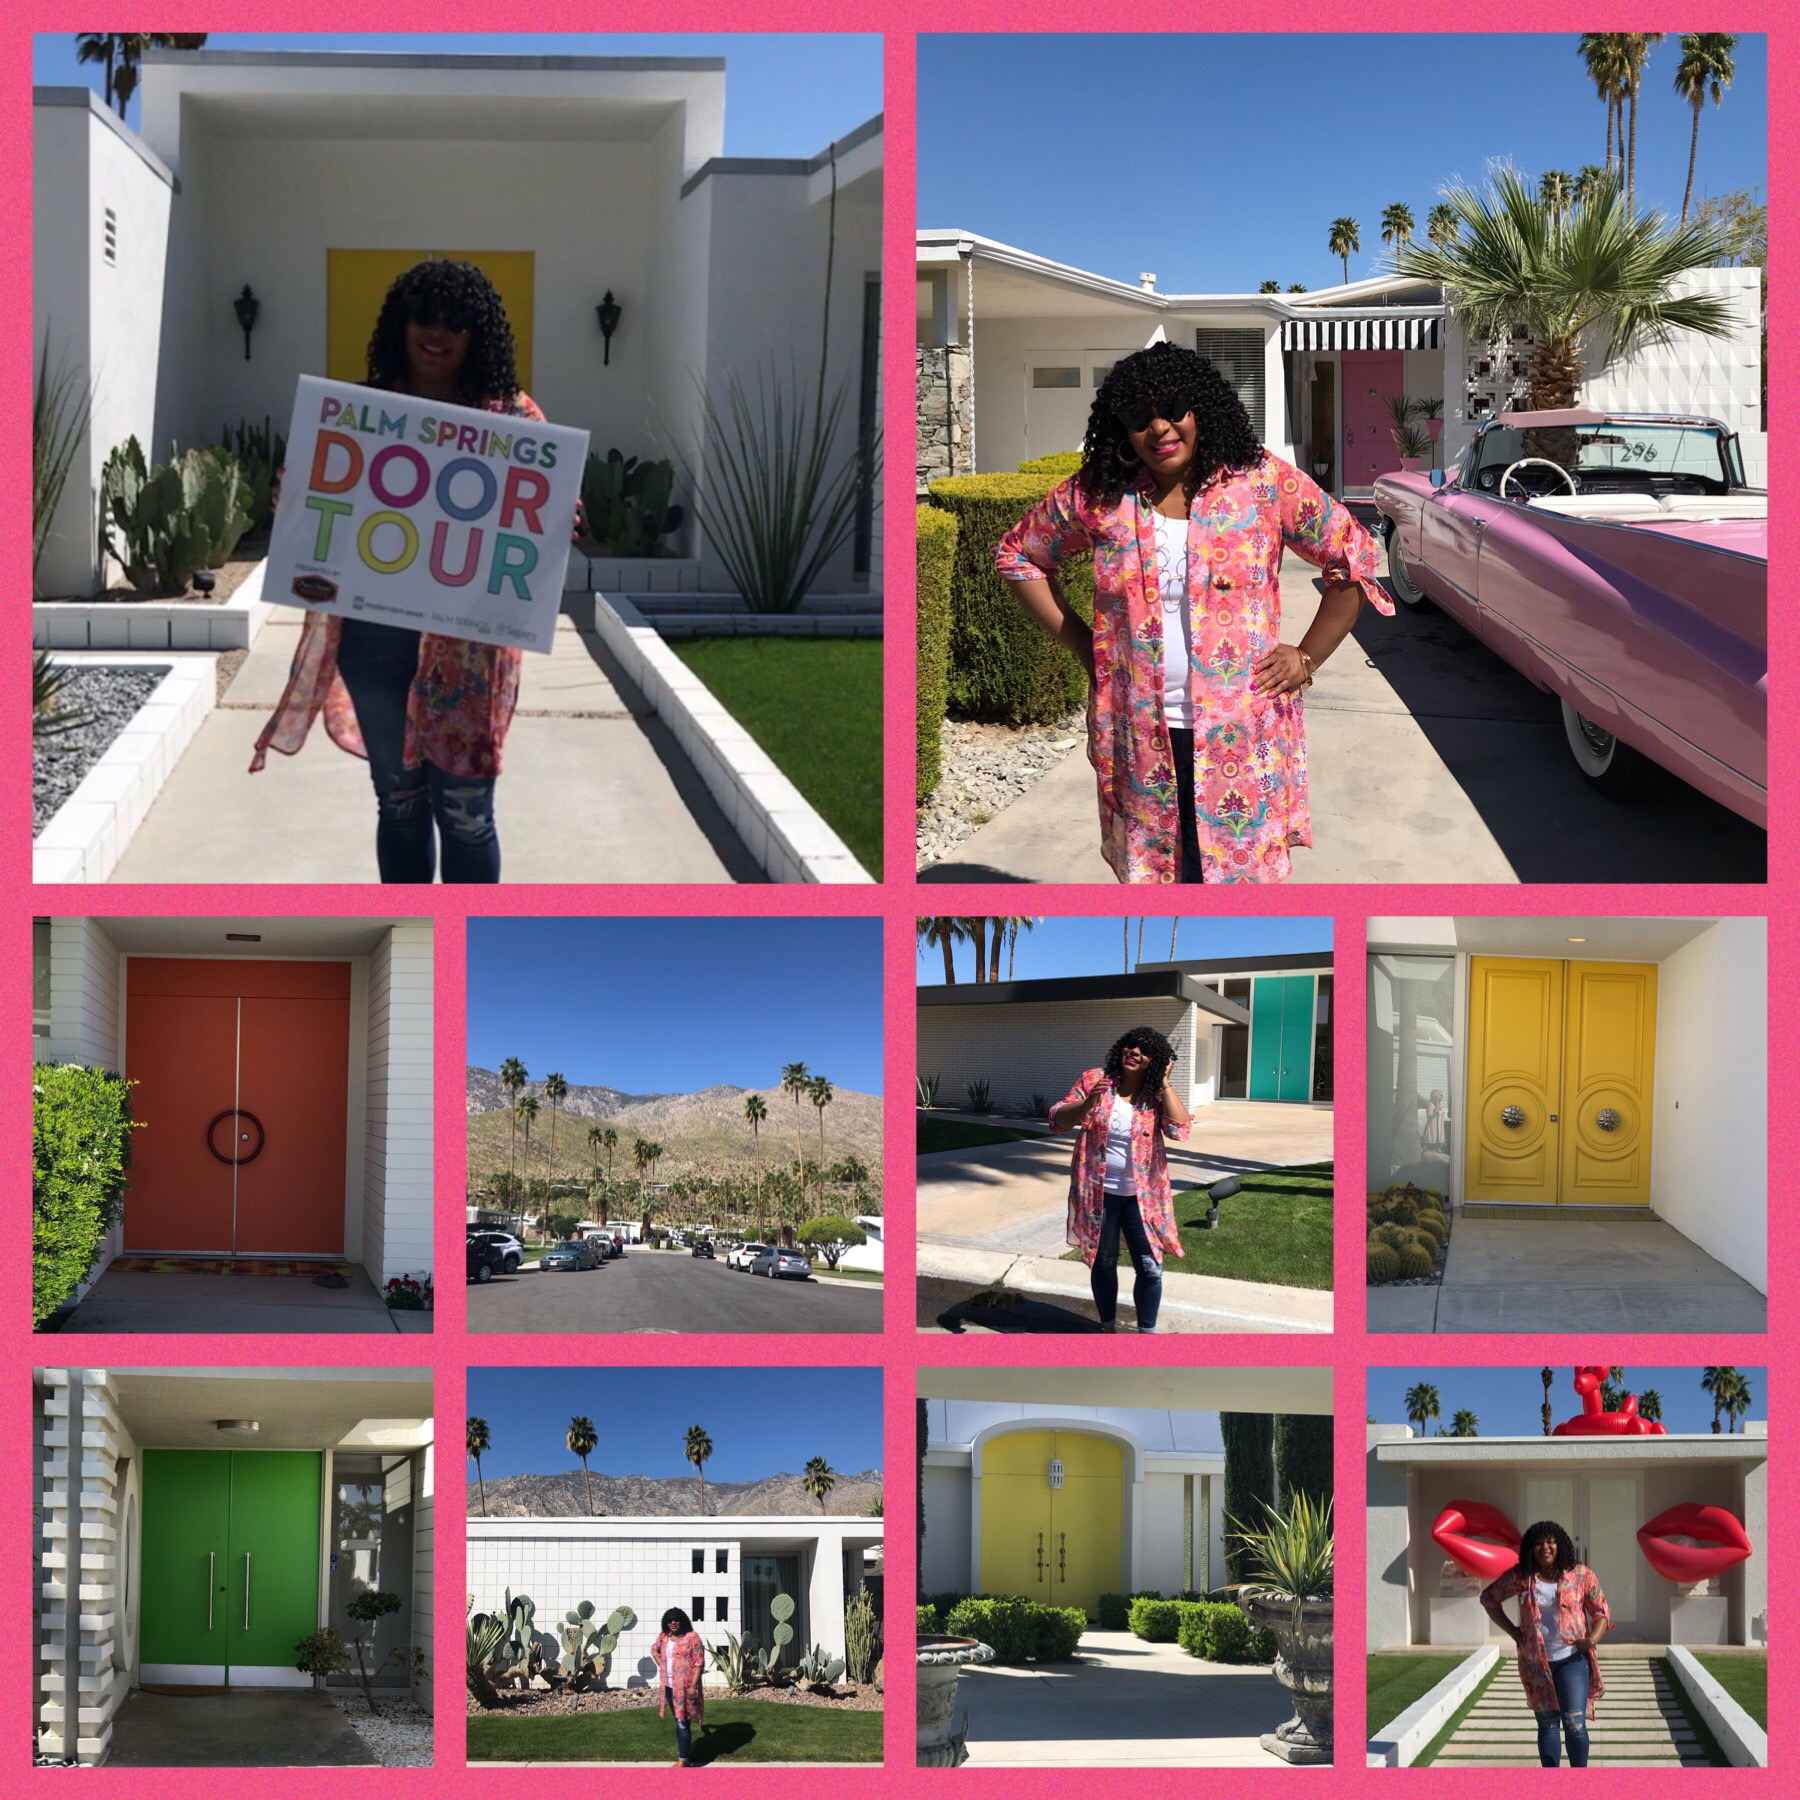 Doors in Palm Springs, CA is a big deal so before I left I went on a Palm Springs Door Tour. I had a blast and was with a group of fun ladies. So fun and worth it. #palmspringsca #doortour #altsummit #livingmybestlife